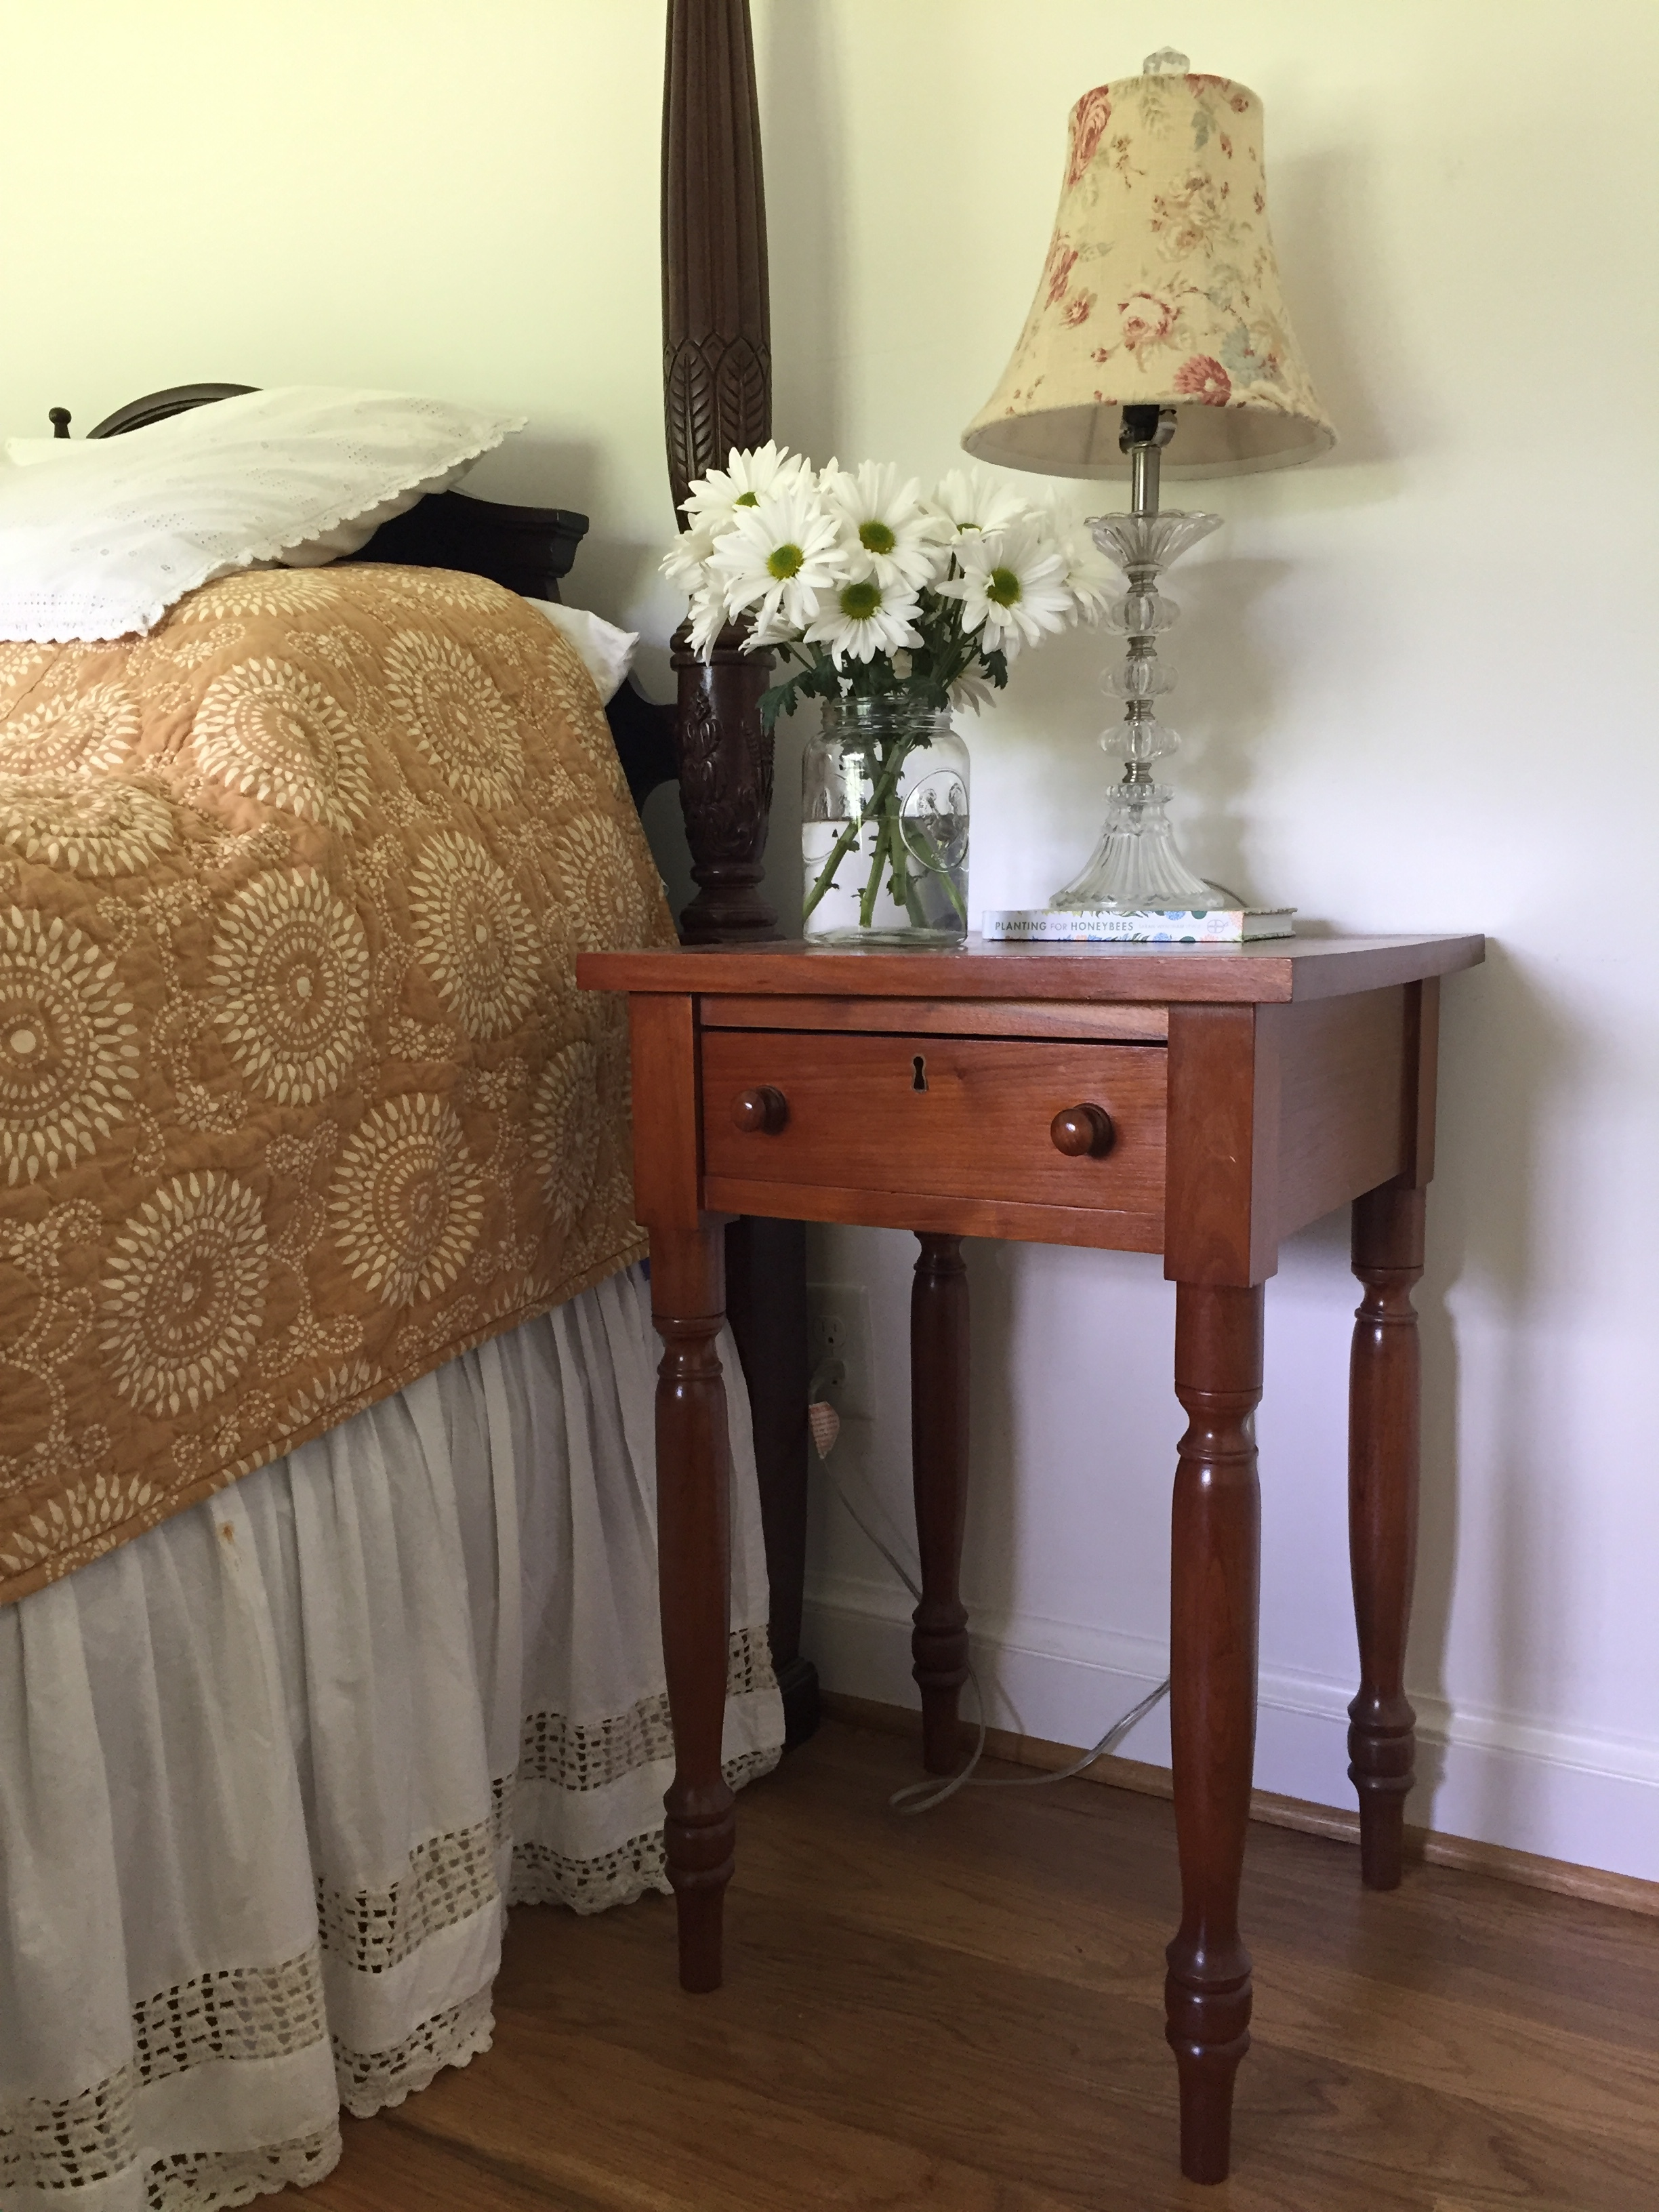 Both the bedside table and glass lamp are antiques I had collected over the years.